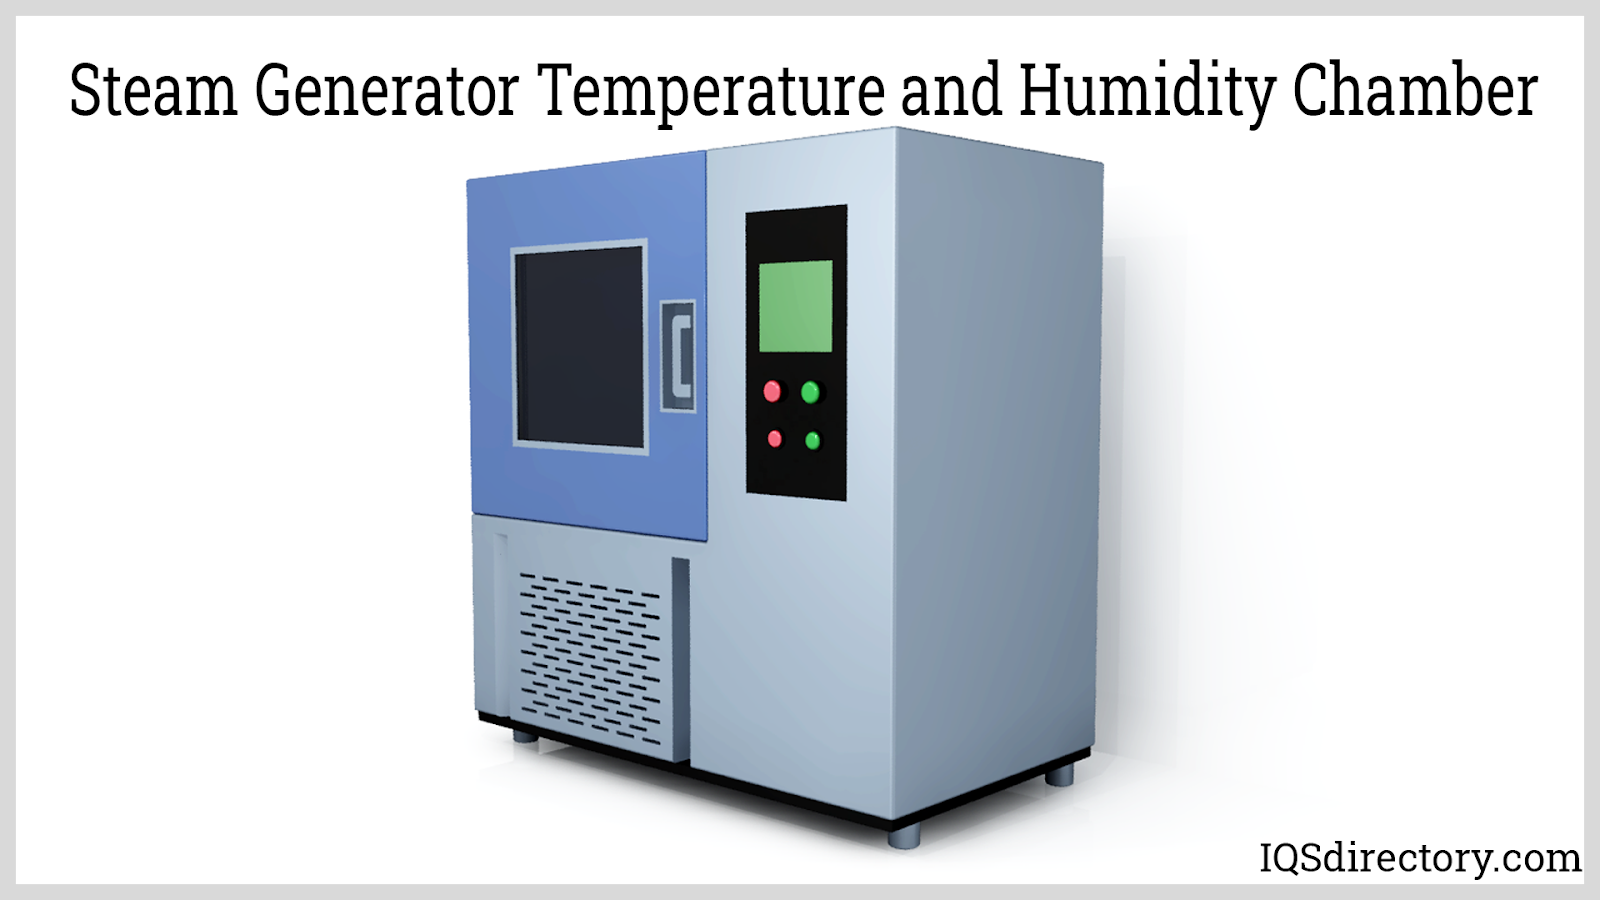 Steam Generator Temperature and Humidity Chamber